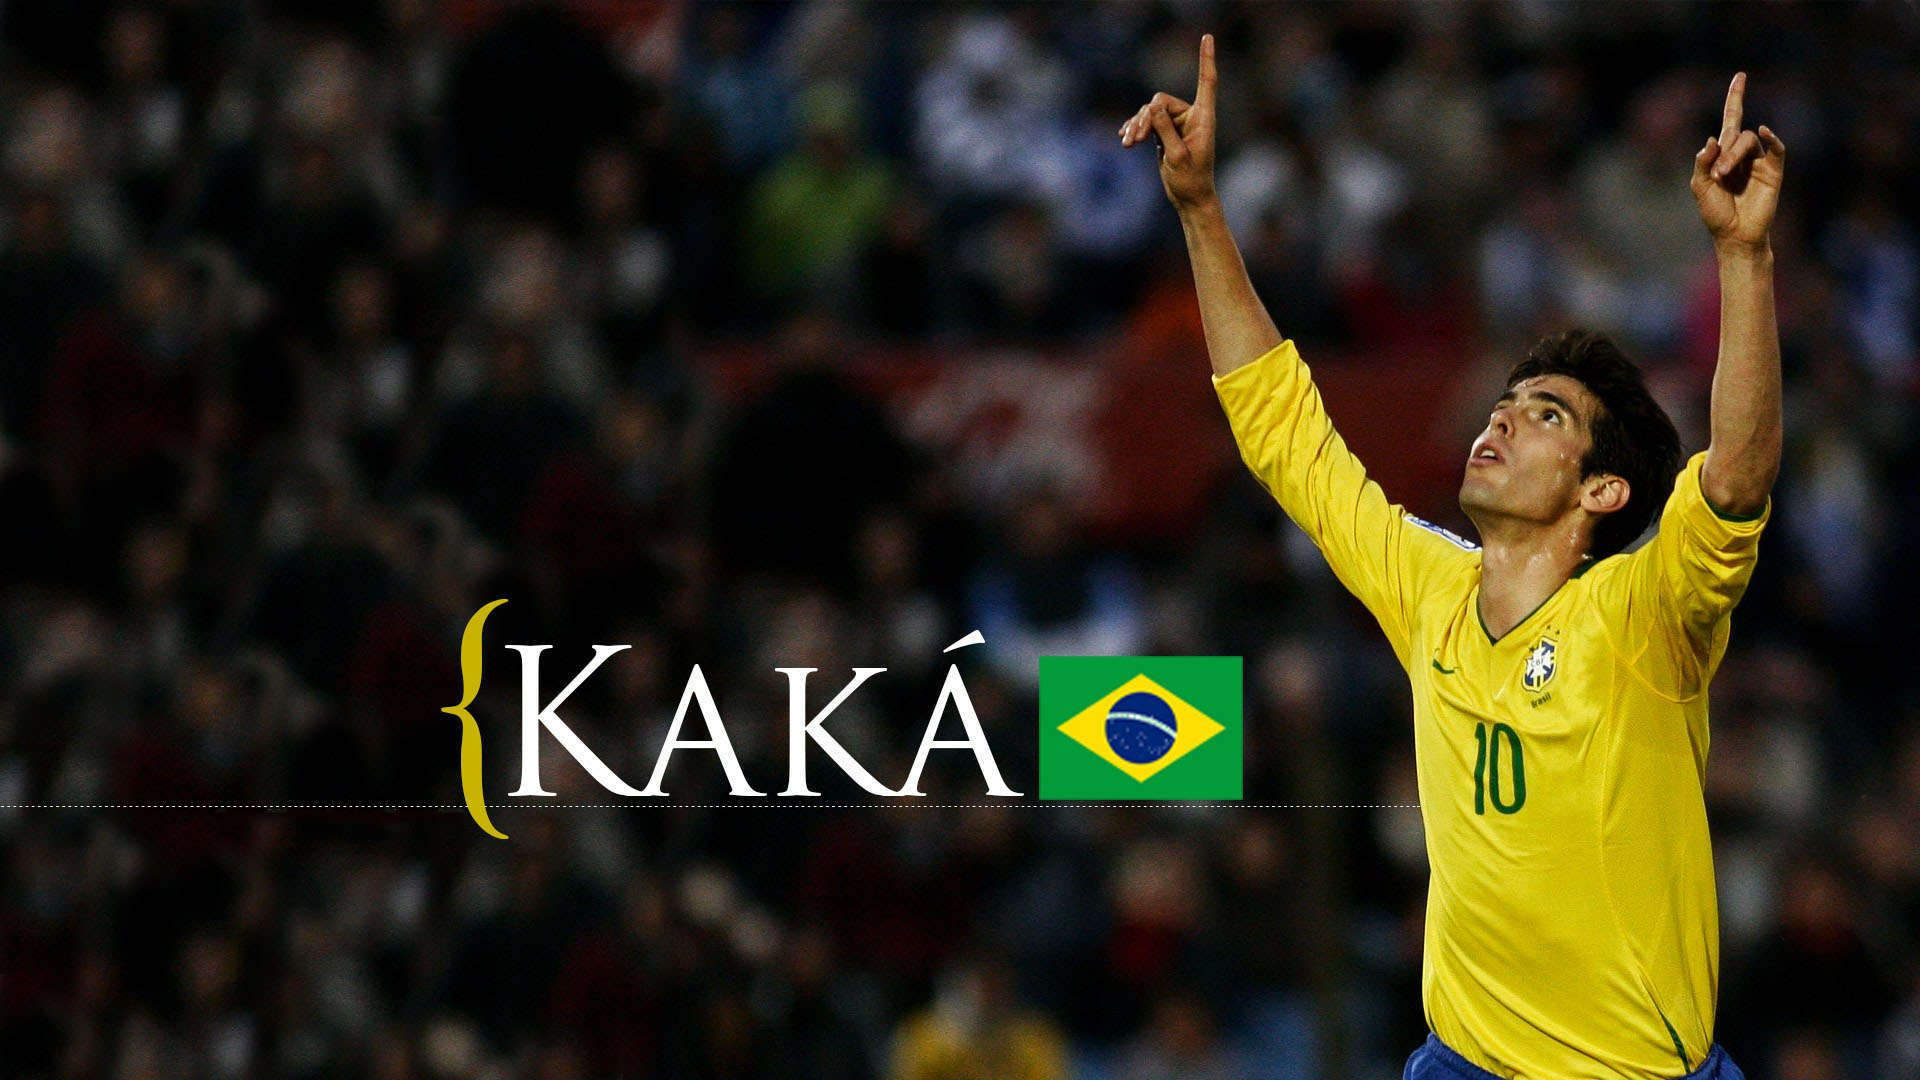 Neymar Hd Wallpaper 1080p Kaka Hd Wallpapers